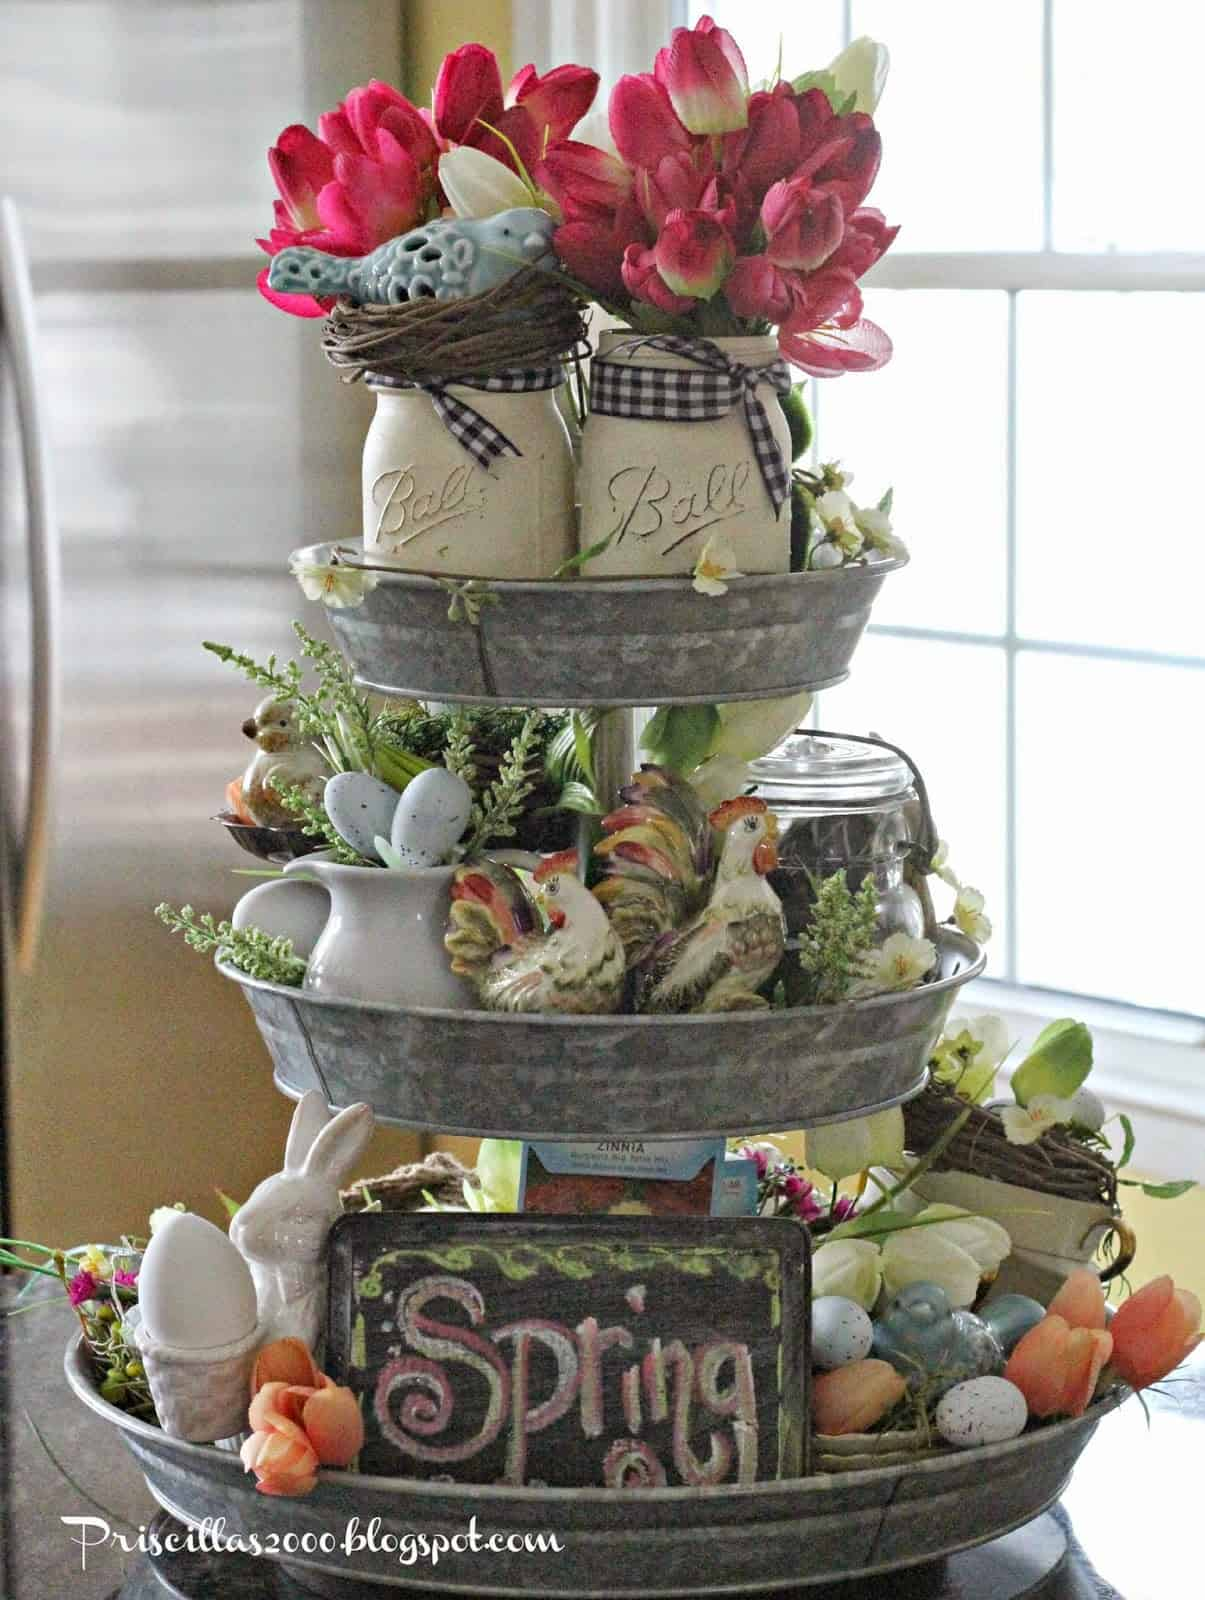 Easter Centrepiece Idea perfect Spring Home Decor